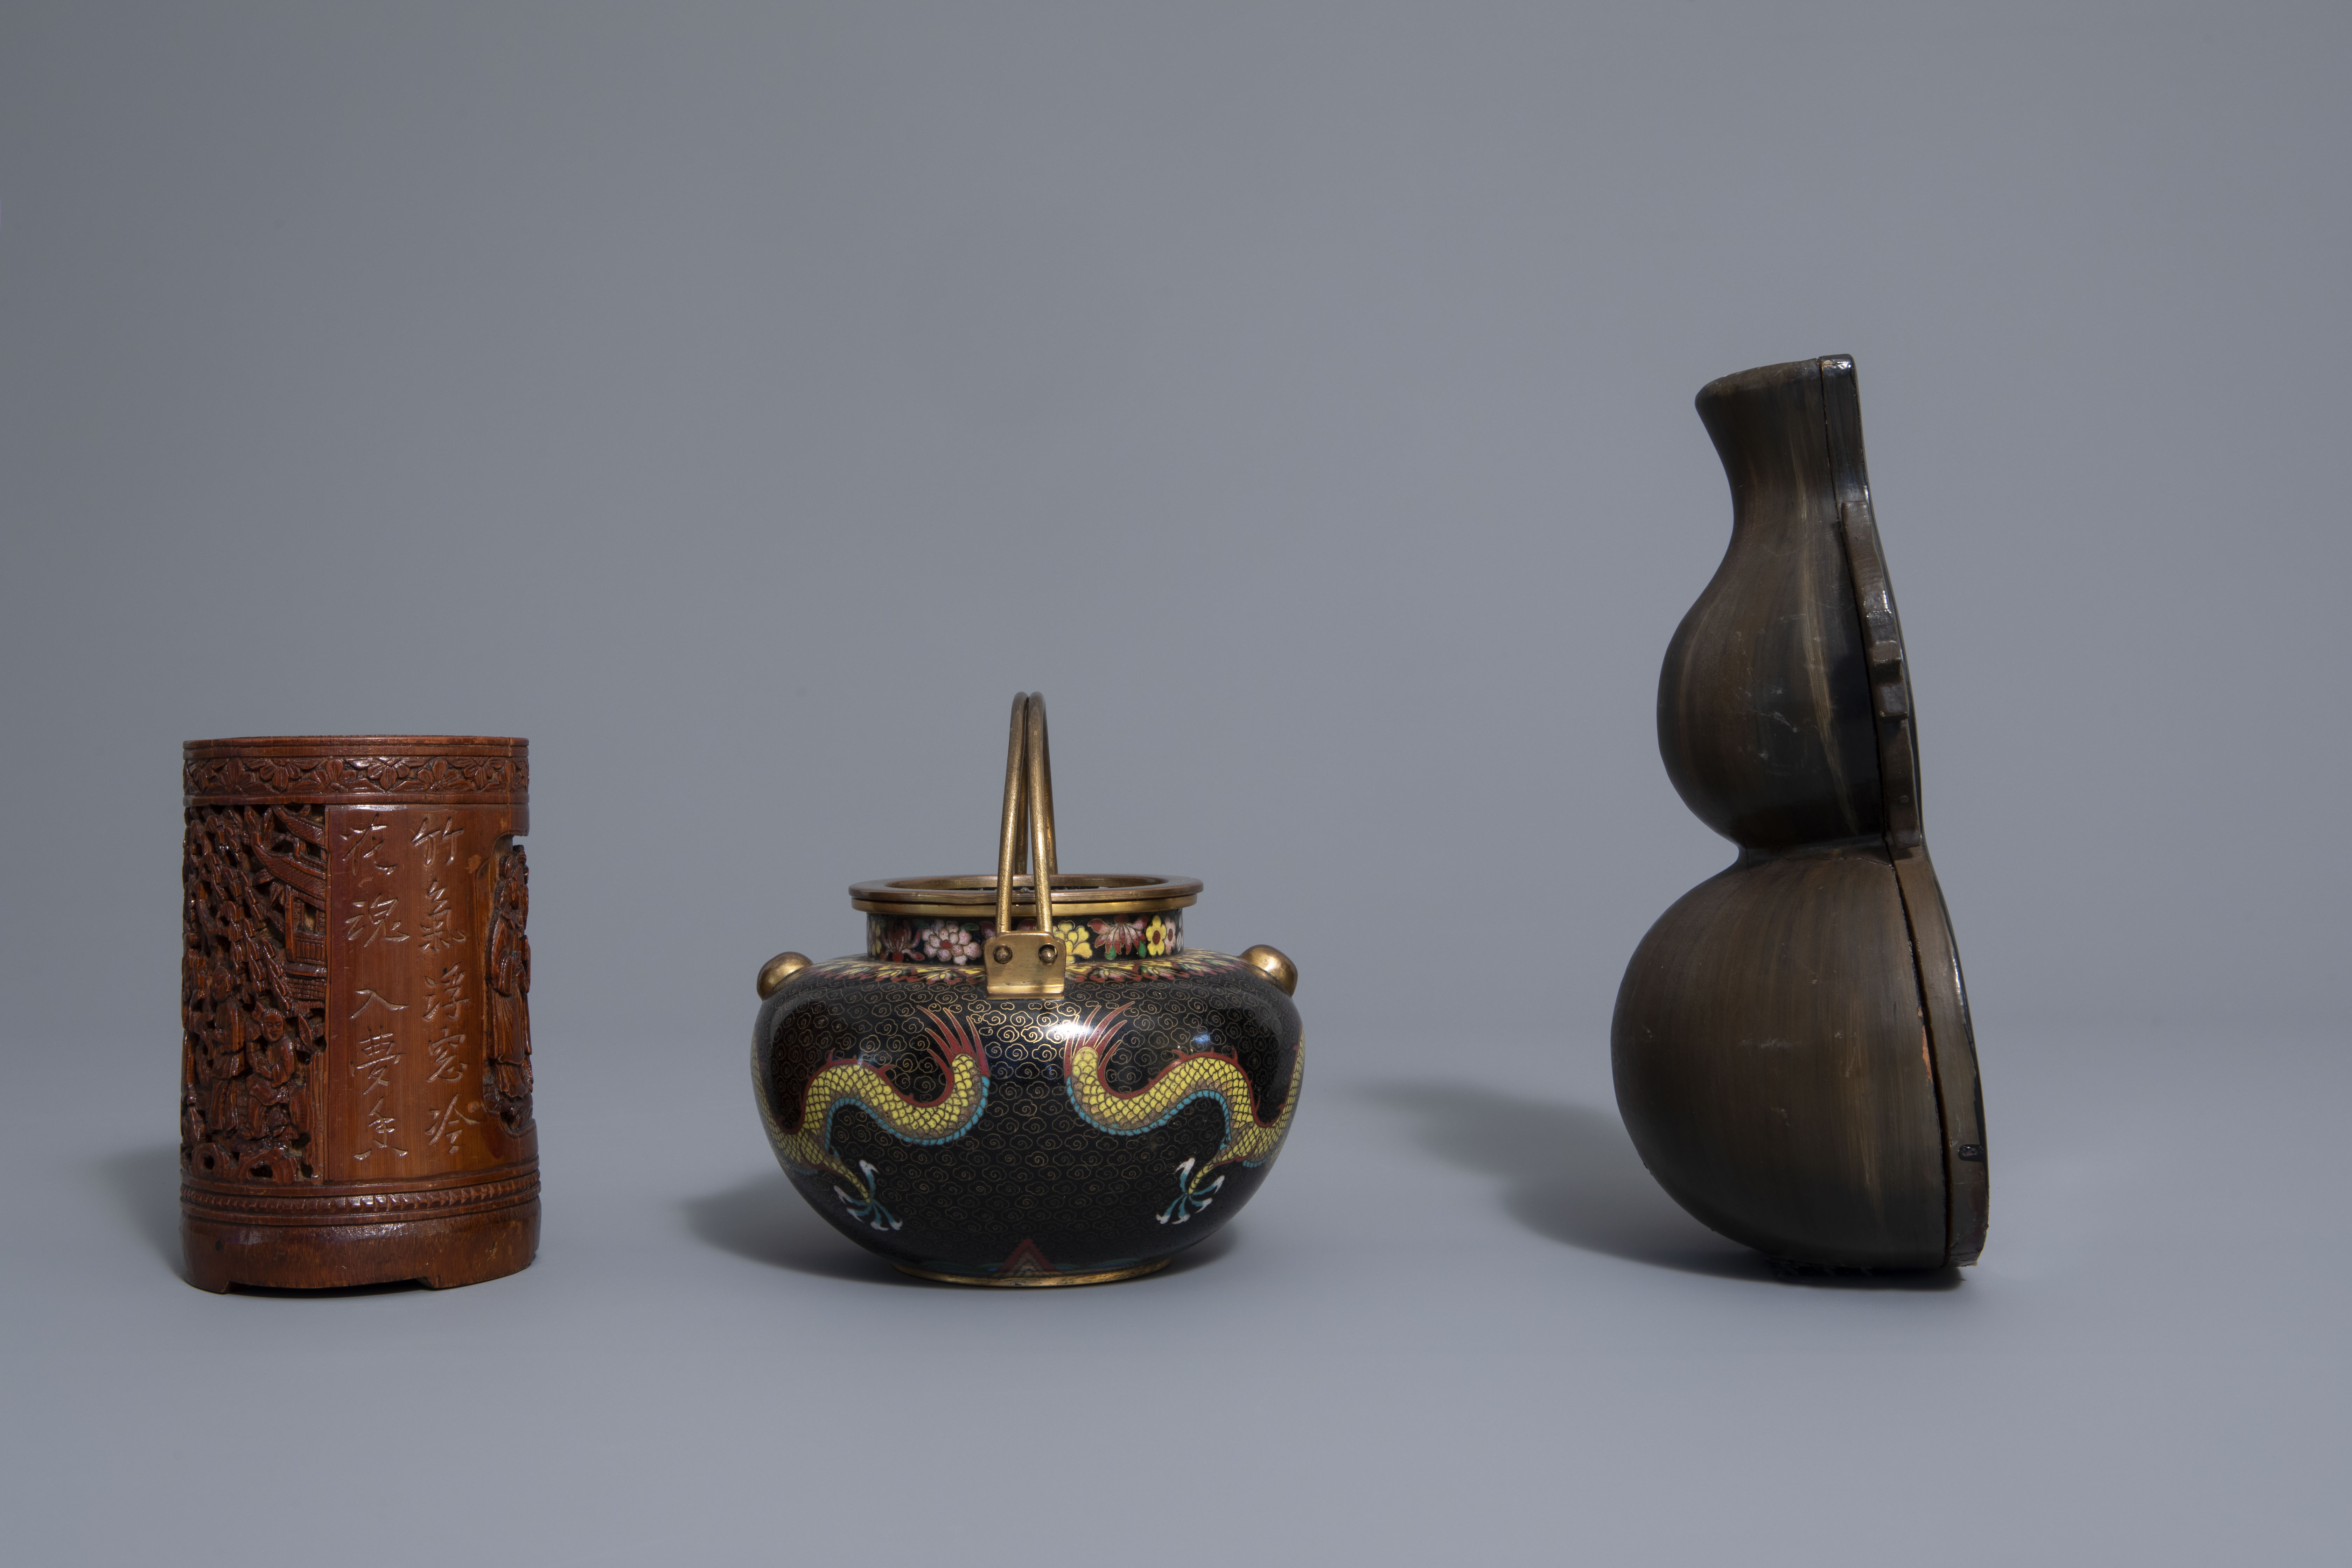 A Chinese tea block, cloisonné teapot, wall vase, bamboo brush pot & 3 red lacquer vases, 20th C. - Image 11 of 16